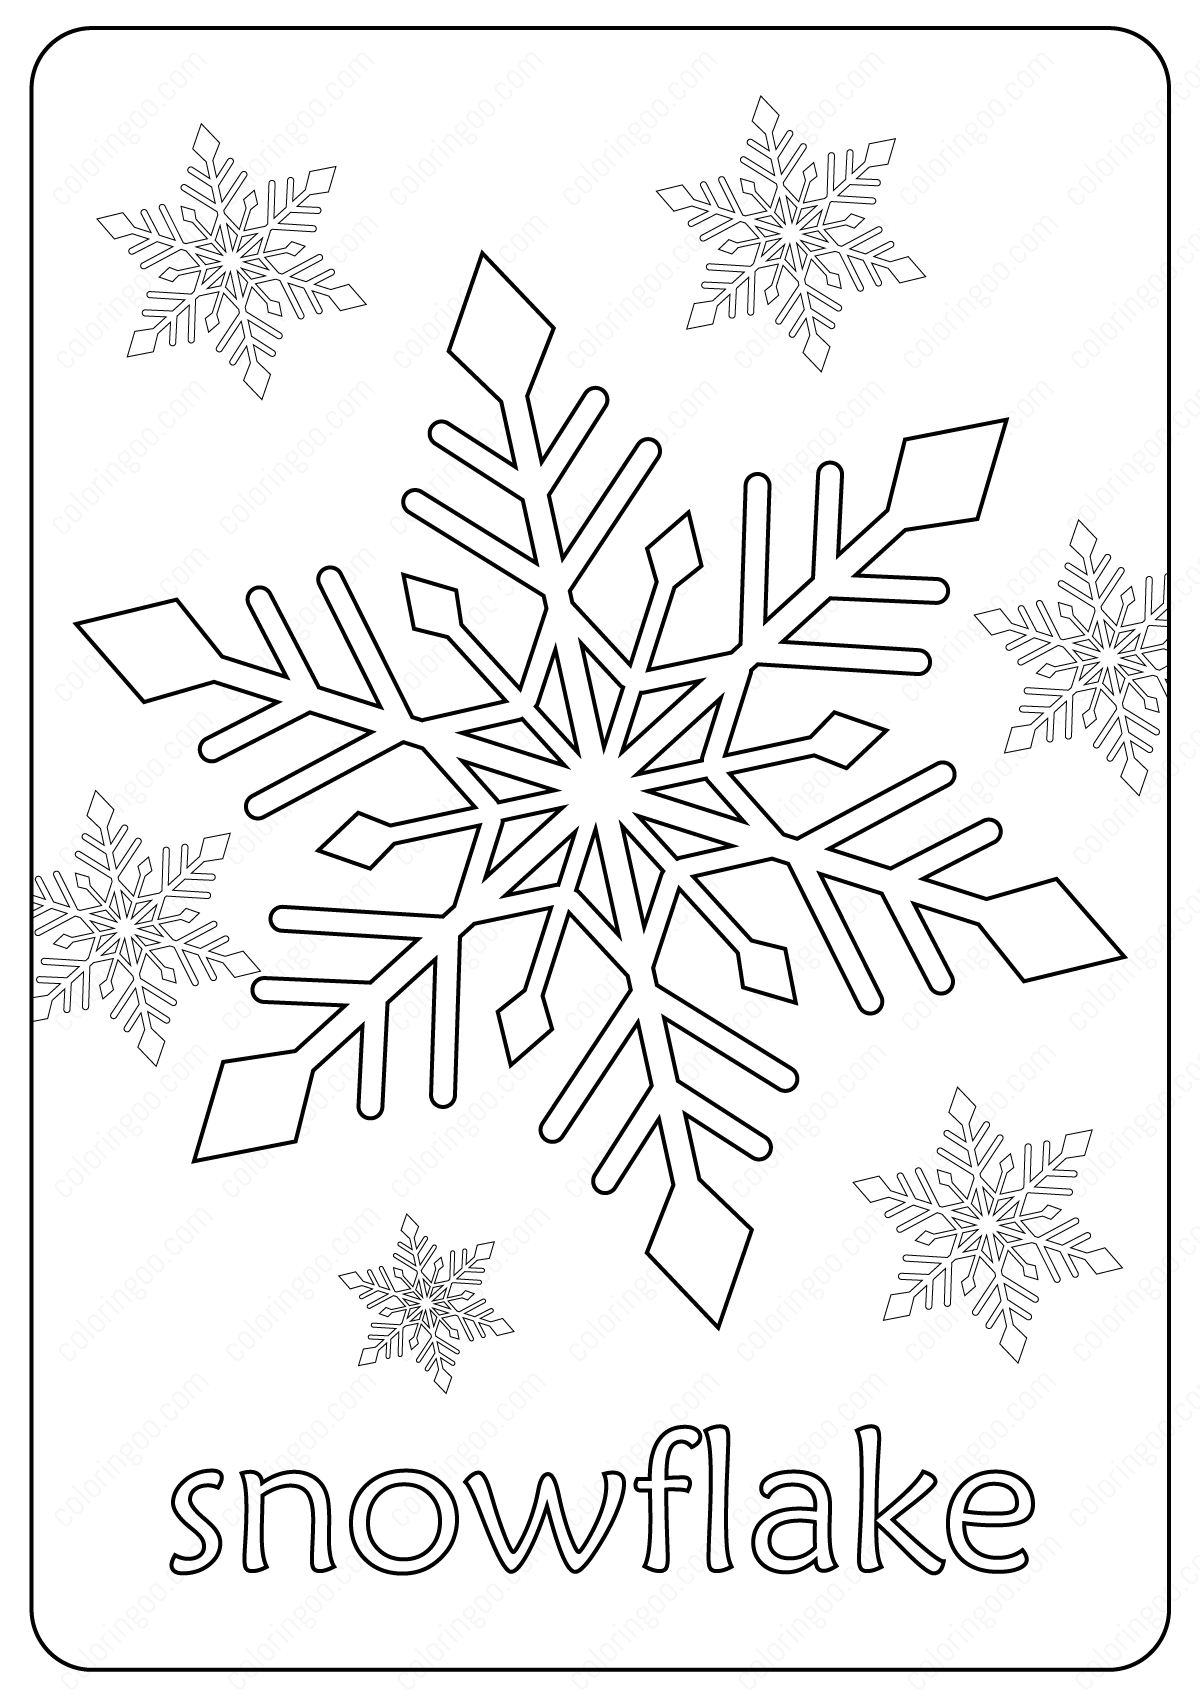 Free Printable Snowflake Coloring Pages (With images